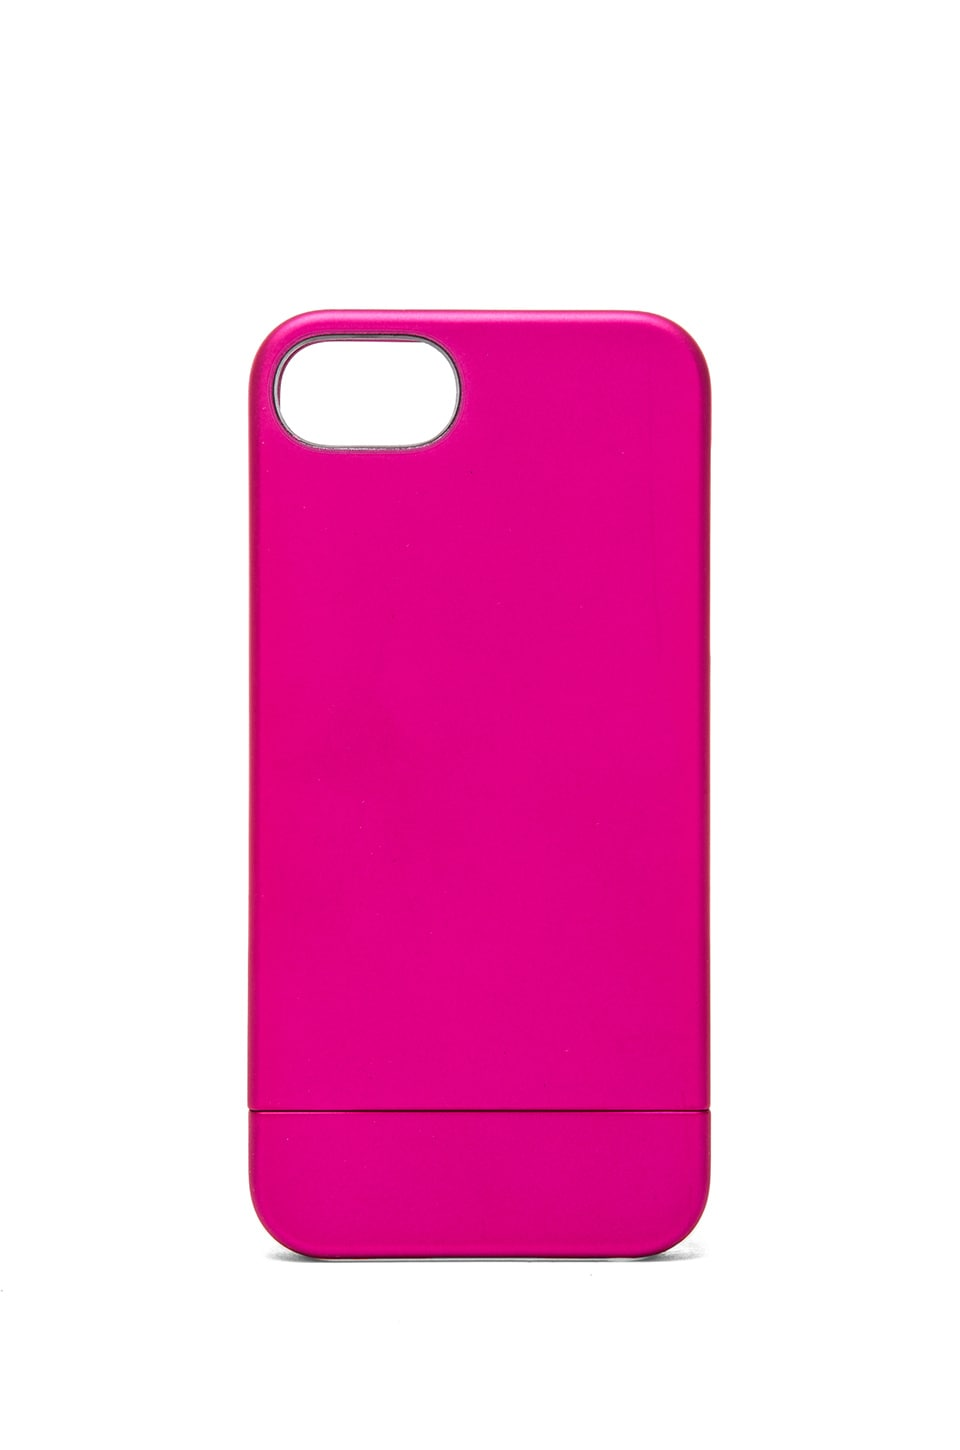 INCASE Metallic Slider for iPhone 5 in Pop Pink